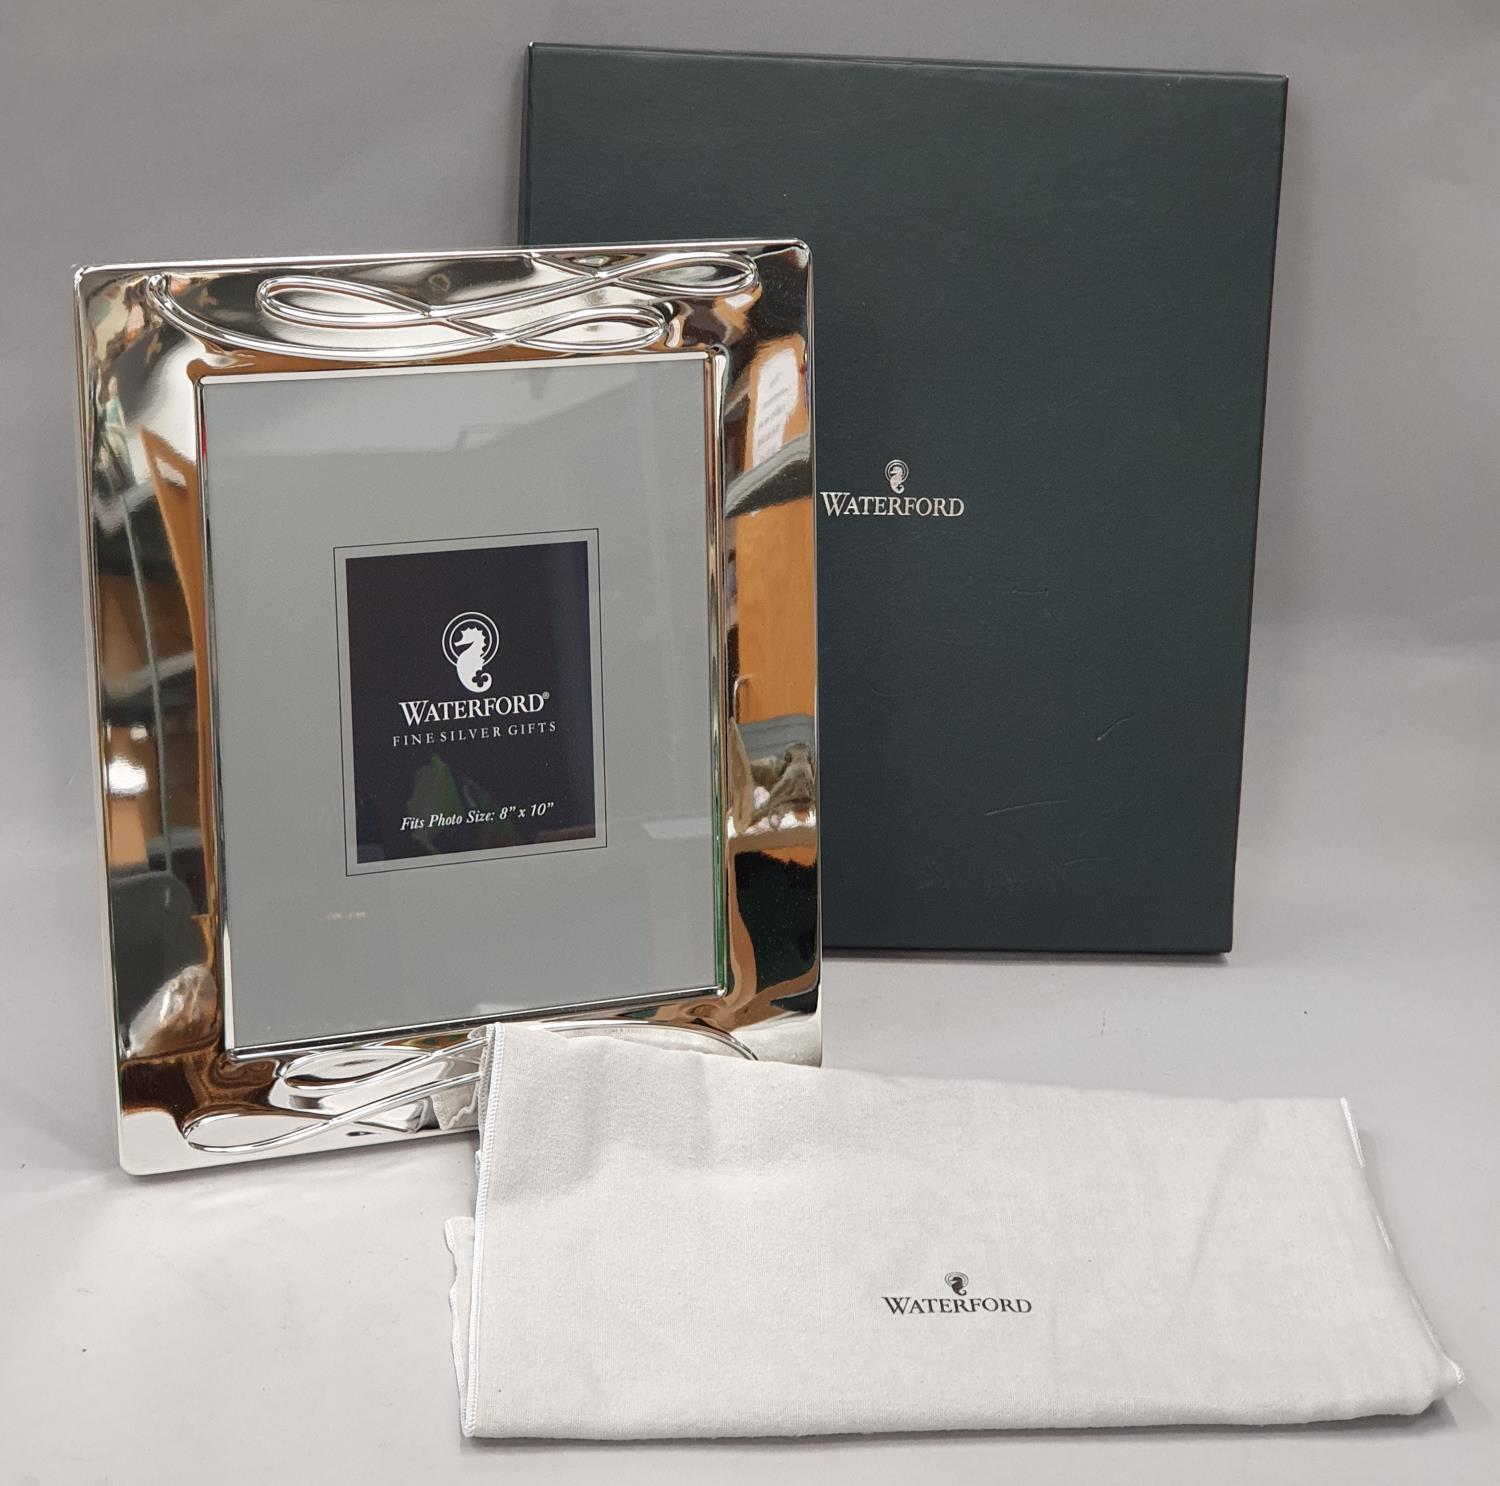 """Waterford Ballet Ribbon 8x10"""" silver plated picture frame with fabric pouch and box."""